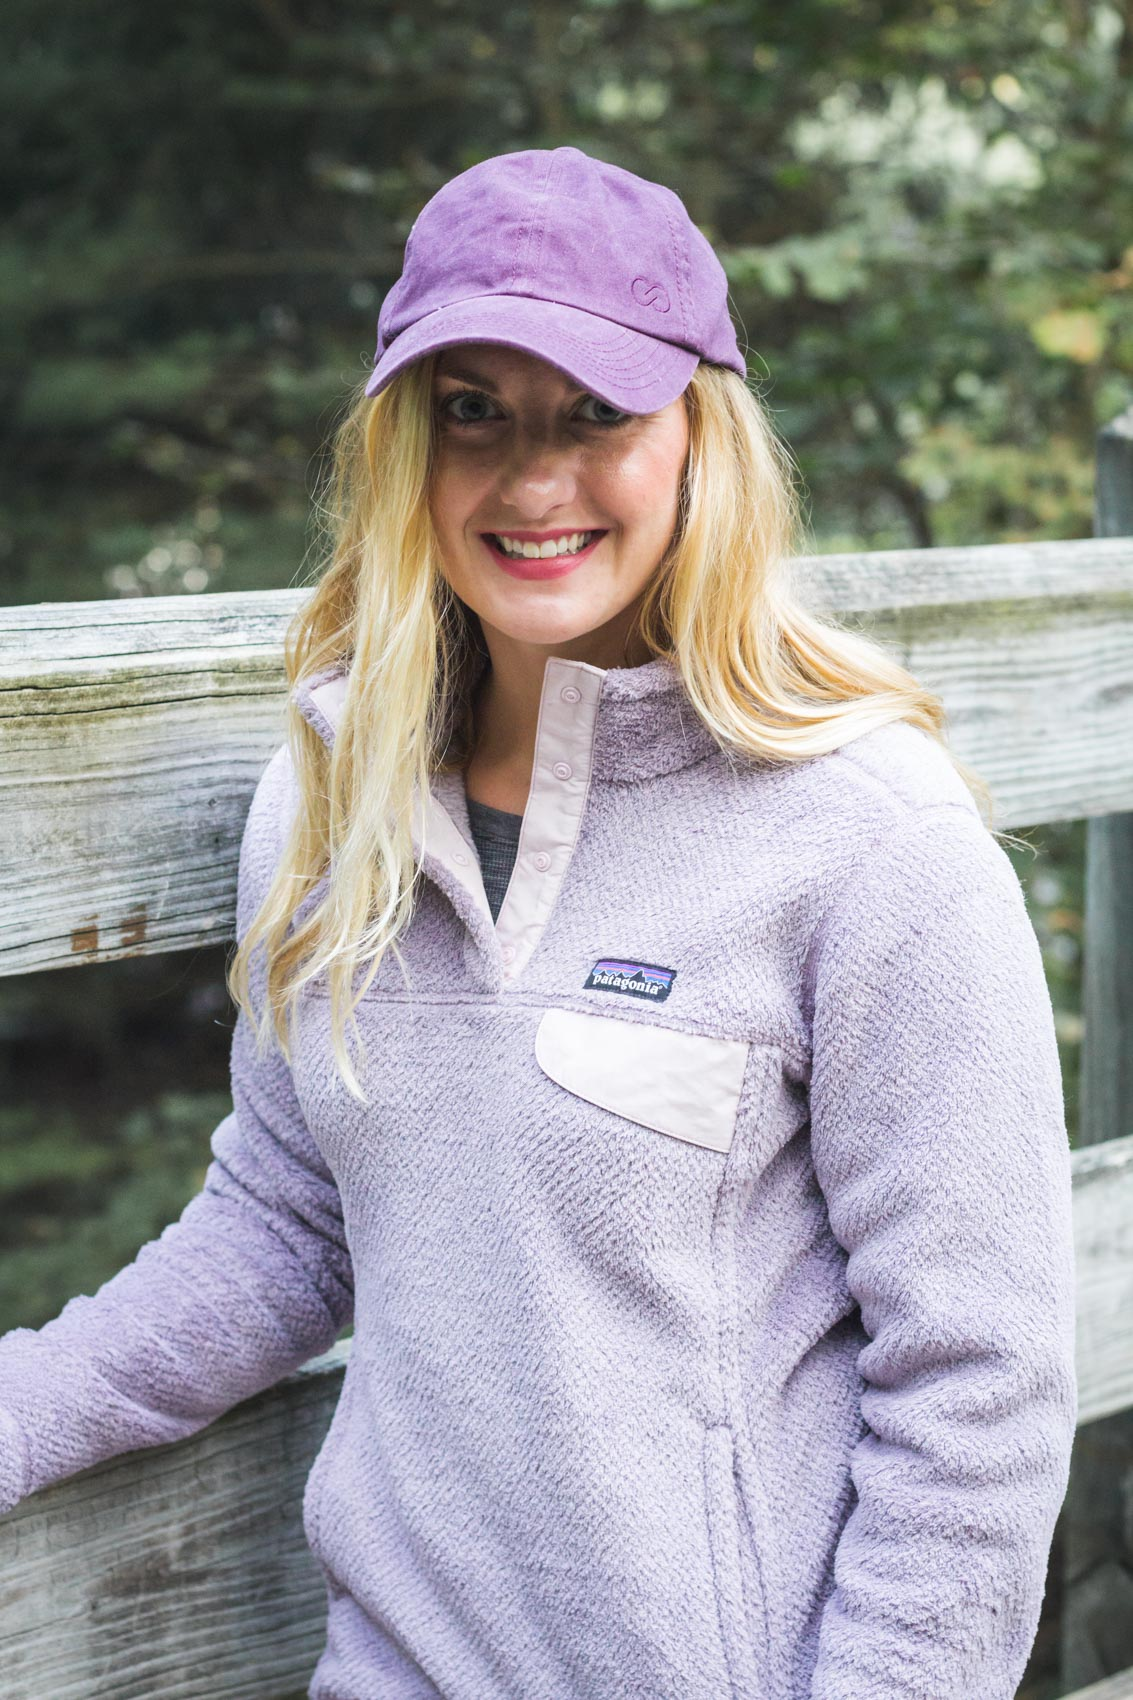 It's rare to find a Patagonia pullover sale going on, but it's your lucky day! I add this fuzzy purple Patagonia snap t pullover to my winter outfits all the time!